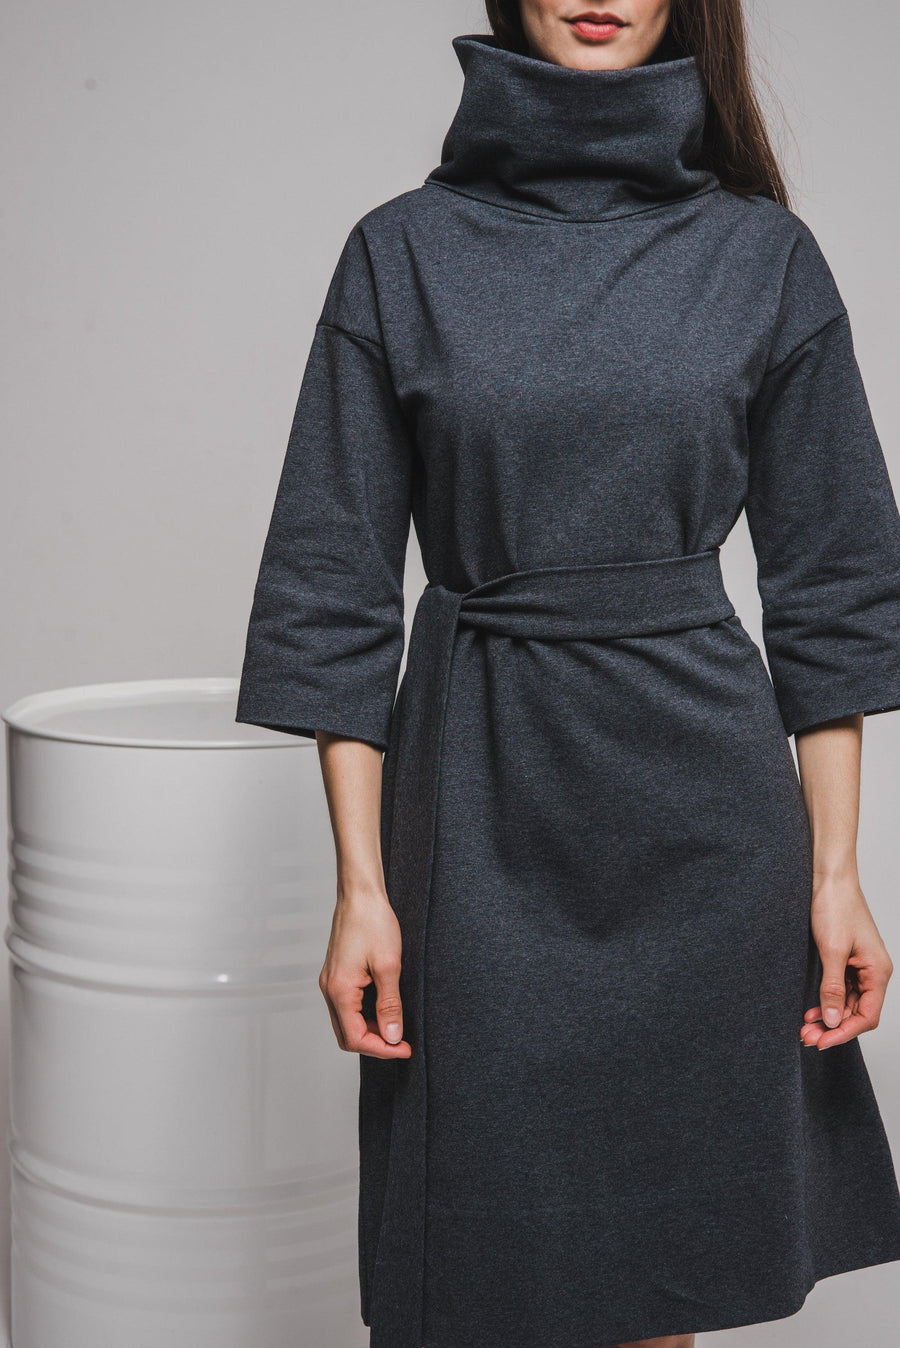 NON460 Cowl neck dress with 3/4 sleeves